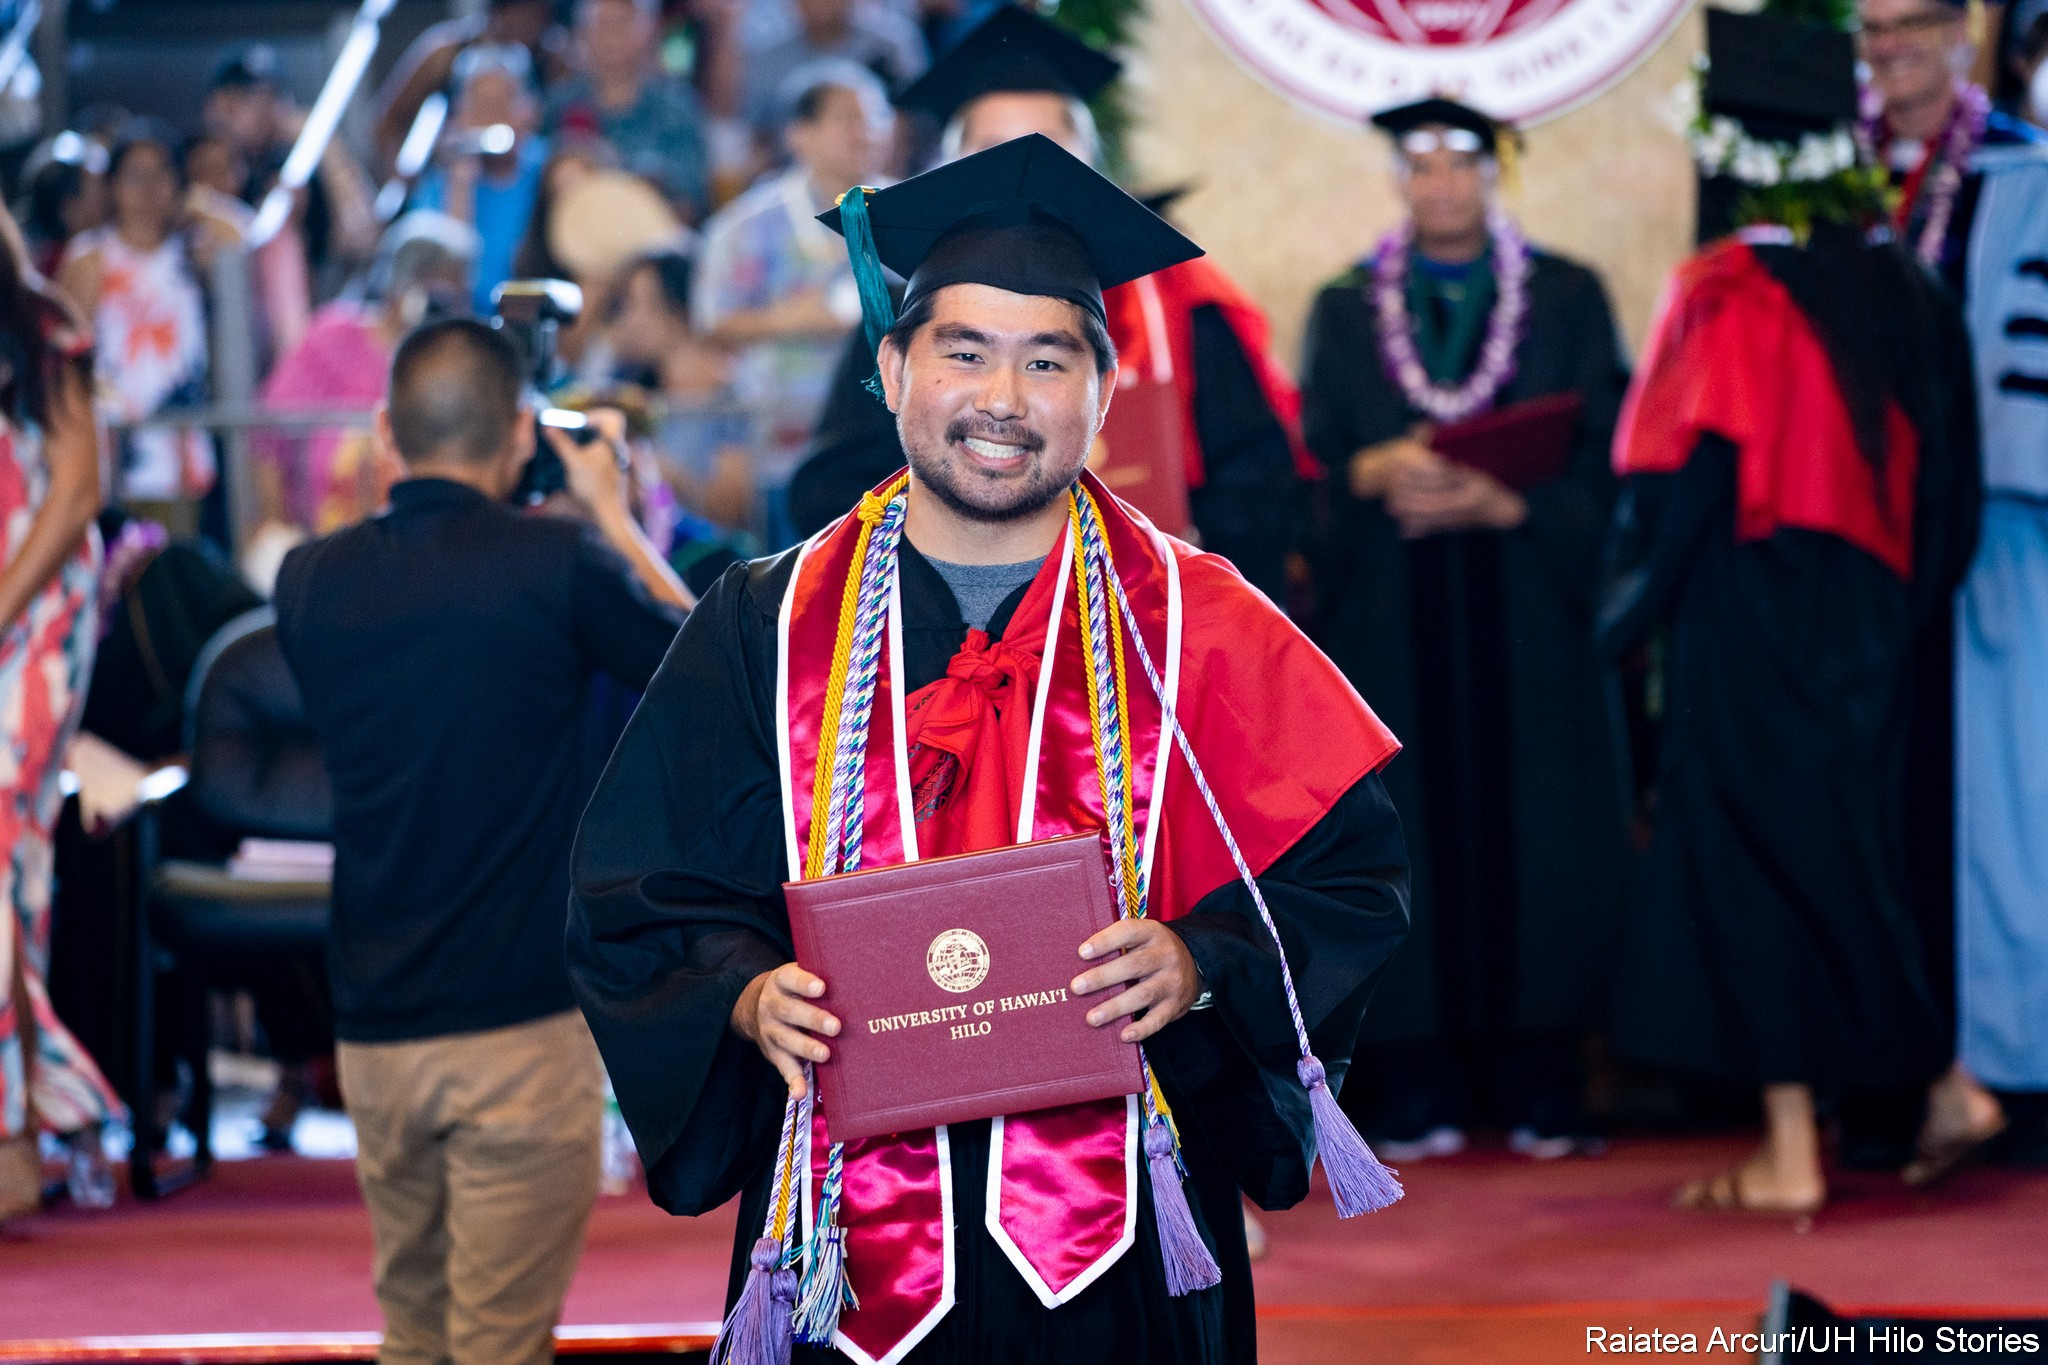 Male graduate with red sash, gold cord, purple cord, leaving dais with diploma.